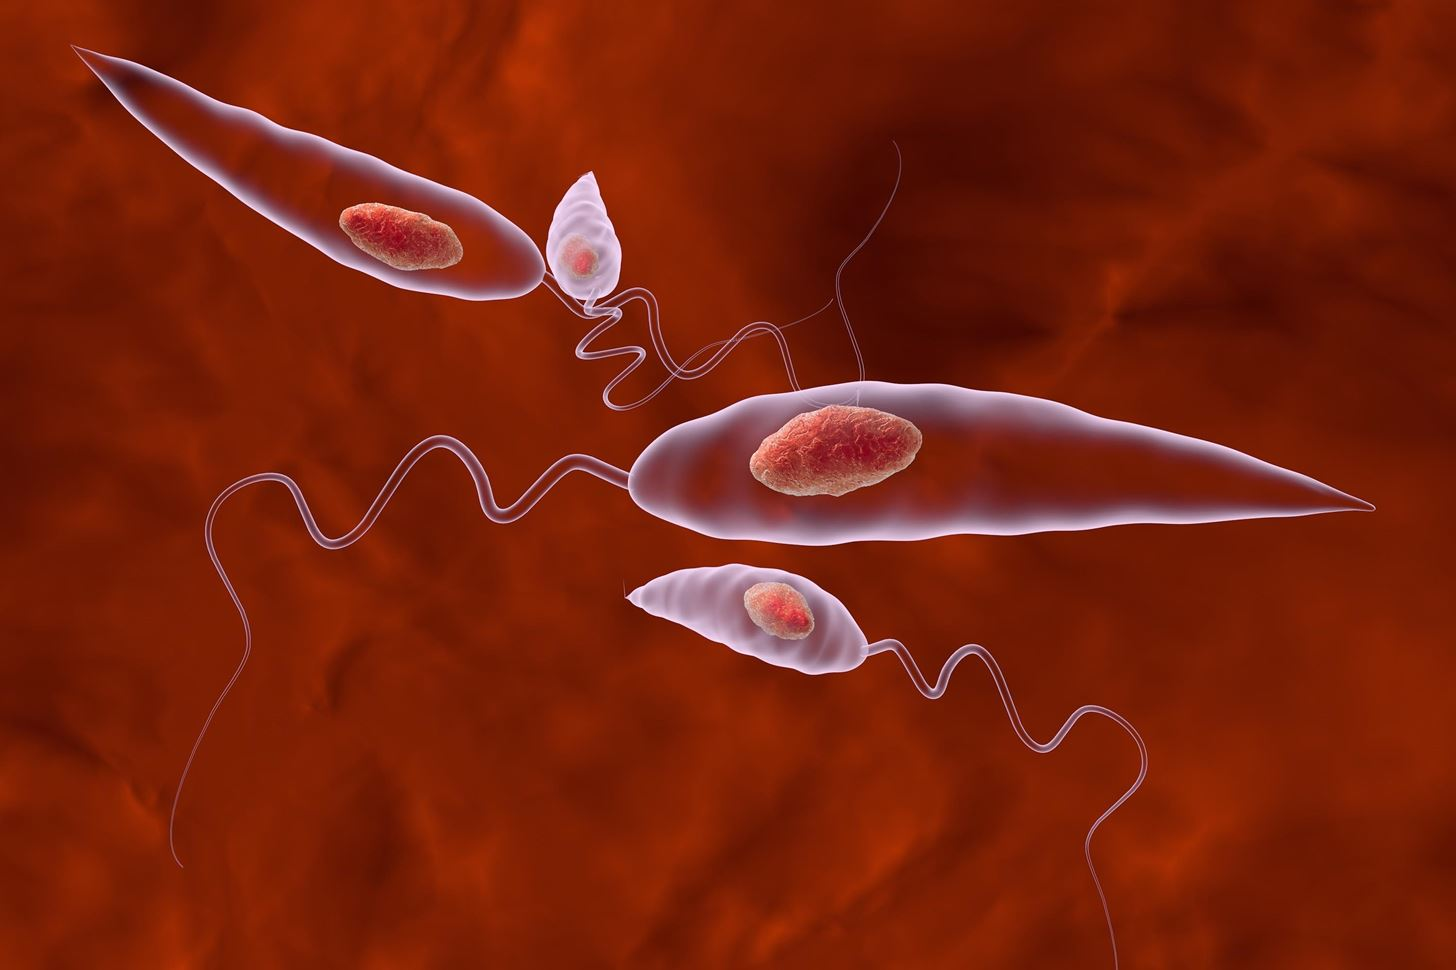 New Research Shows How Flesh-Eating Leishmania Parasites Hide in Our Bodies to Fight Future Infections